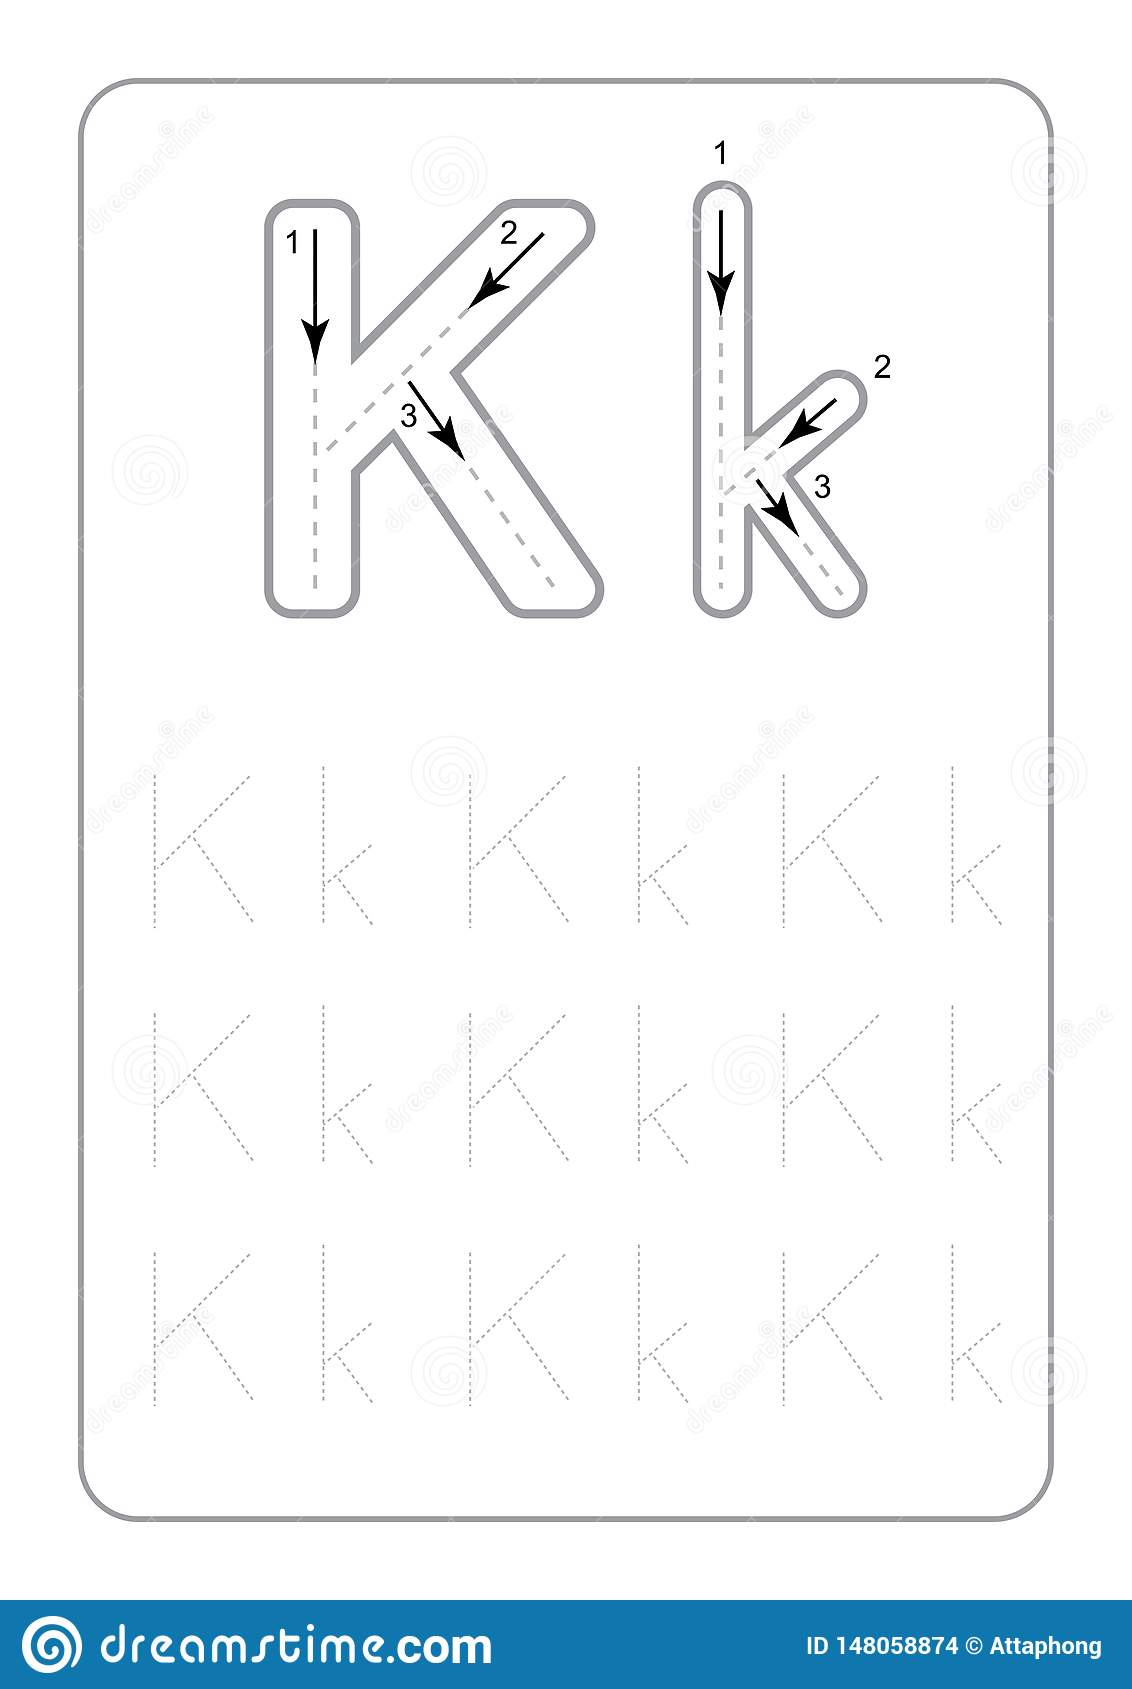 Kindergarten Tracing Letters Worksheets Monochrome Tracing